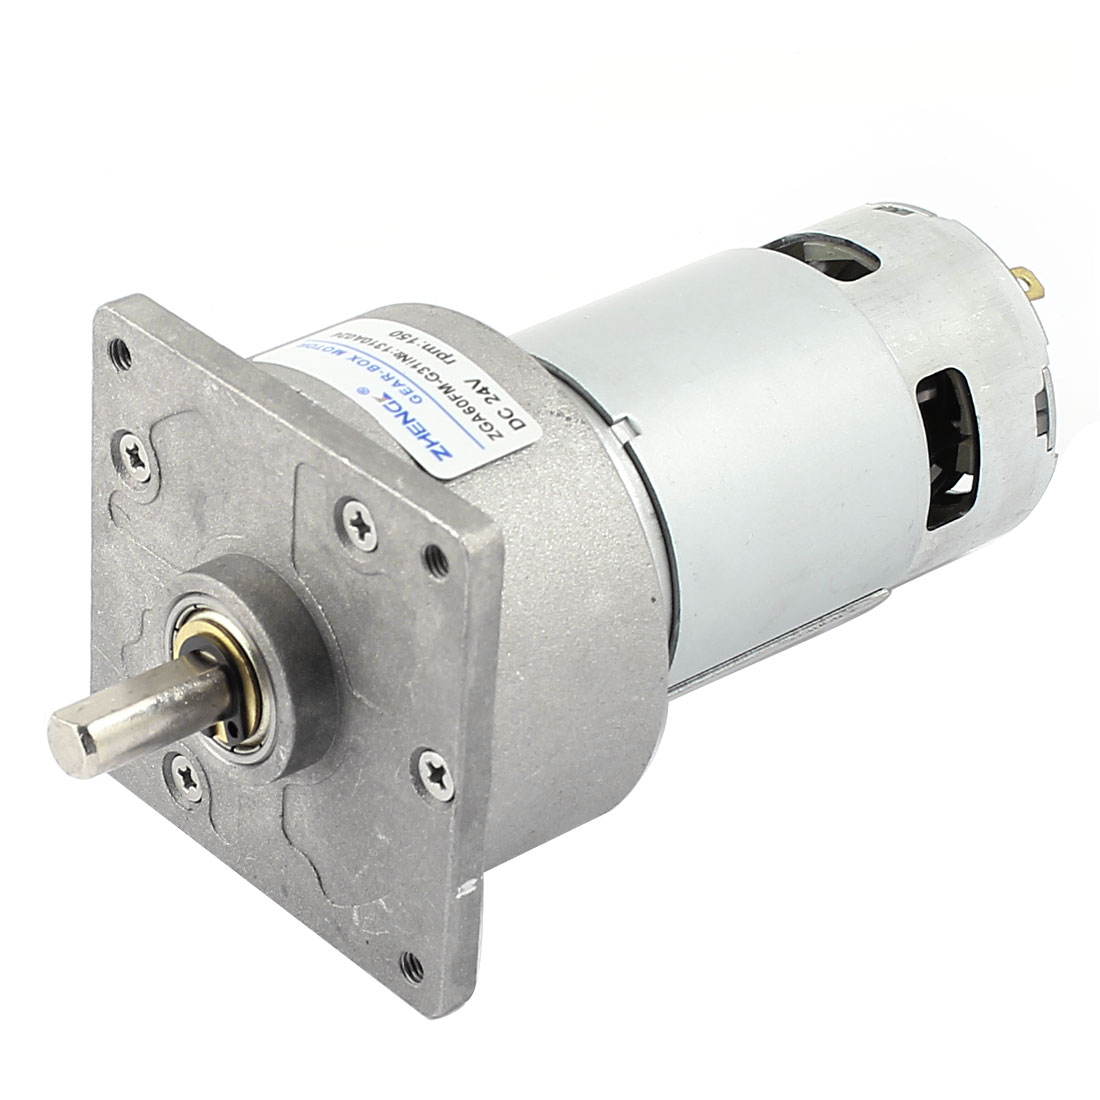 DC24V 4600r/Min Powerful Flange Mount Speed Reduce Electric Geared Box Motor